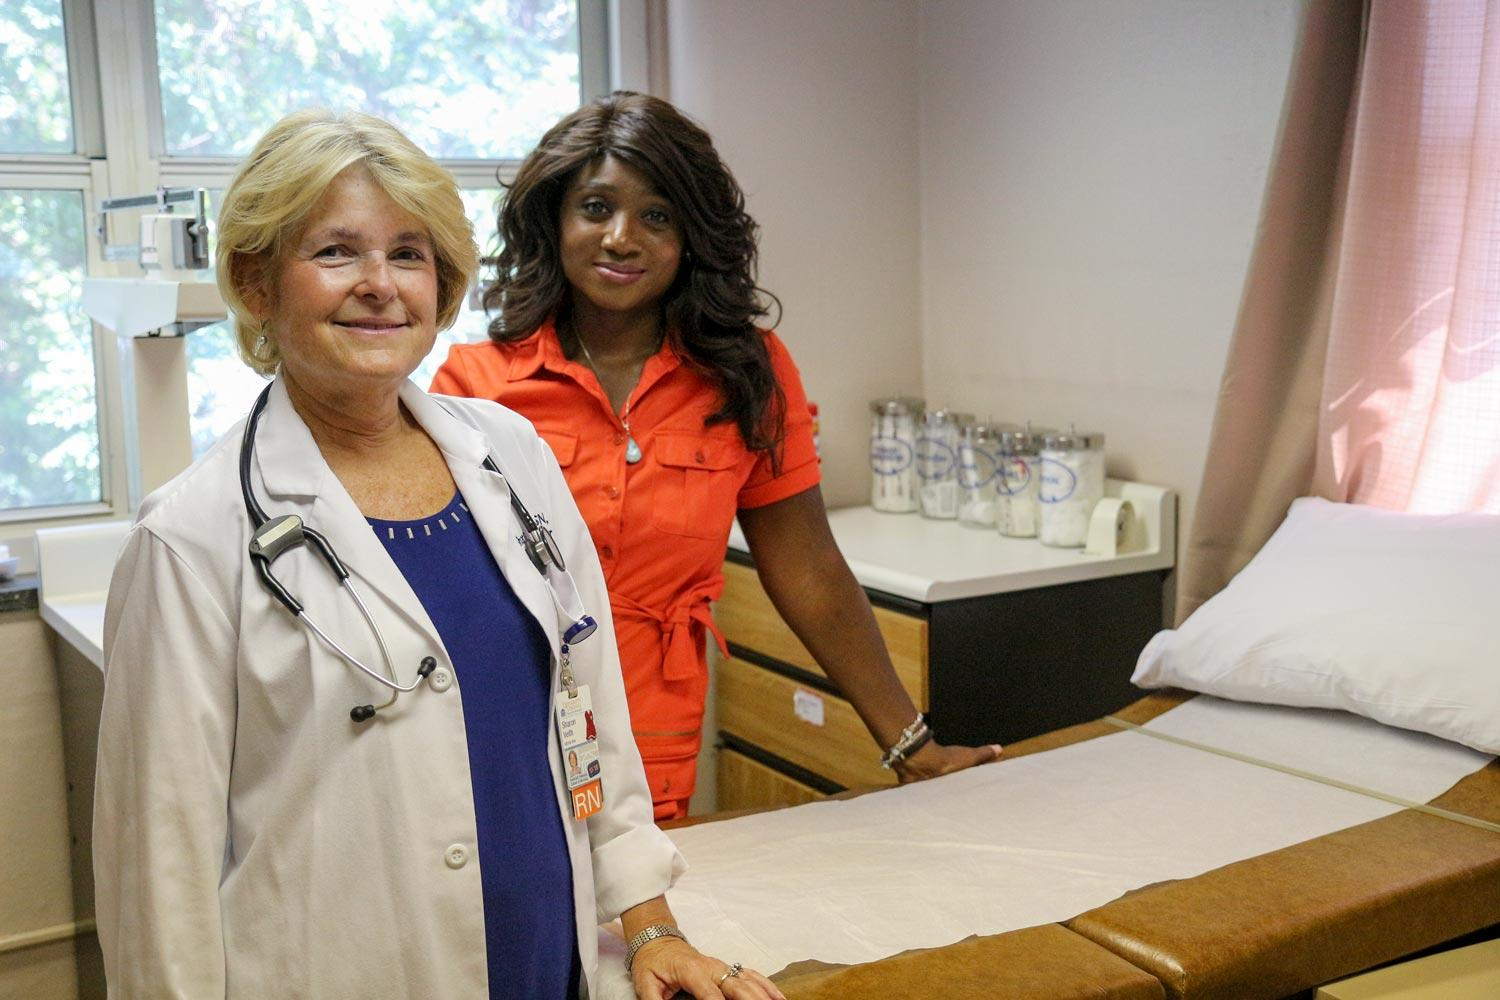 Community health nurse Sharon Veith, left, and Camille Burnett, an associate professor of nursing, at the Westhaven clinic.